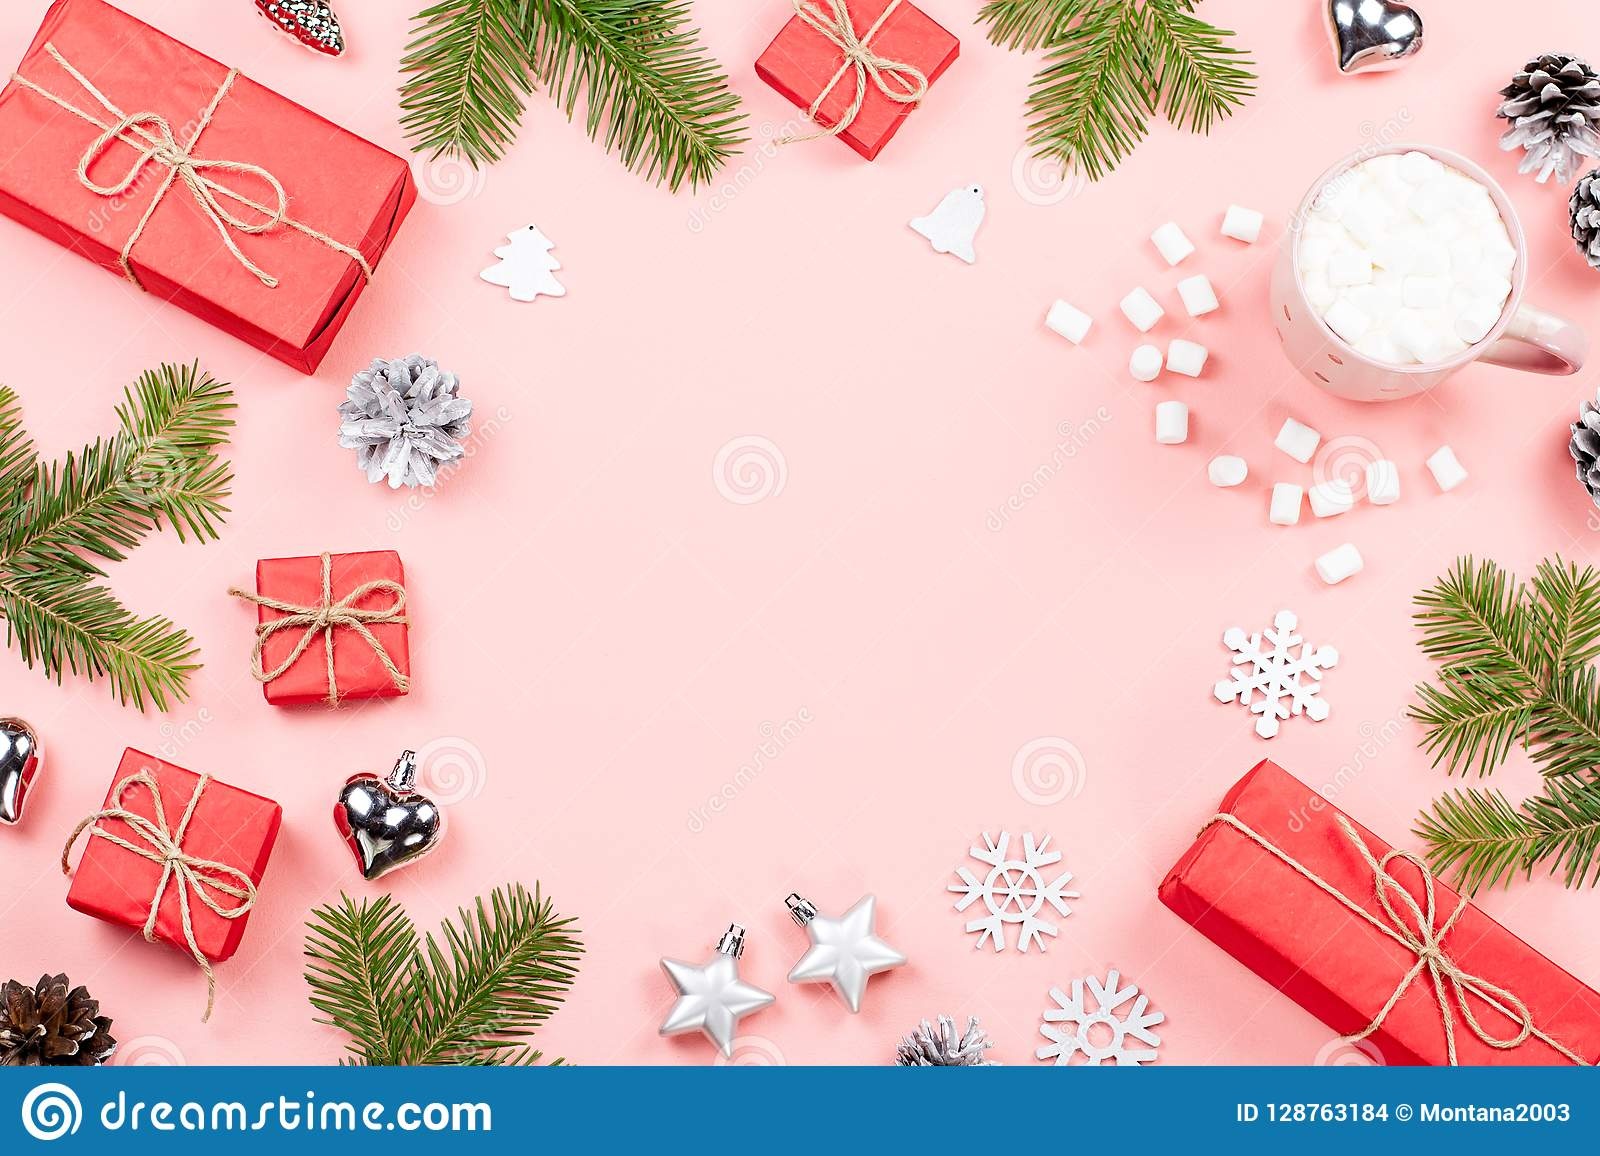 Christmas background with fir branches, lights, red giftboxes, pink decorations, hot drink with marshmallows on pink